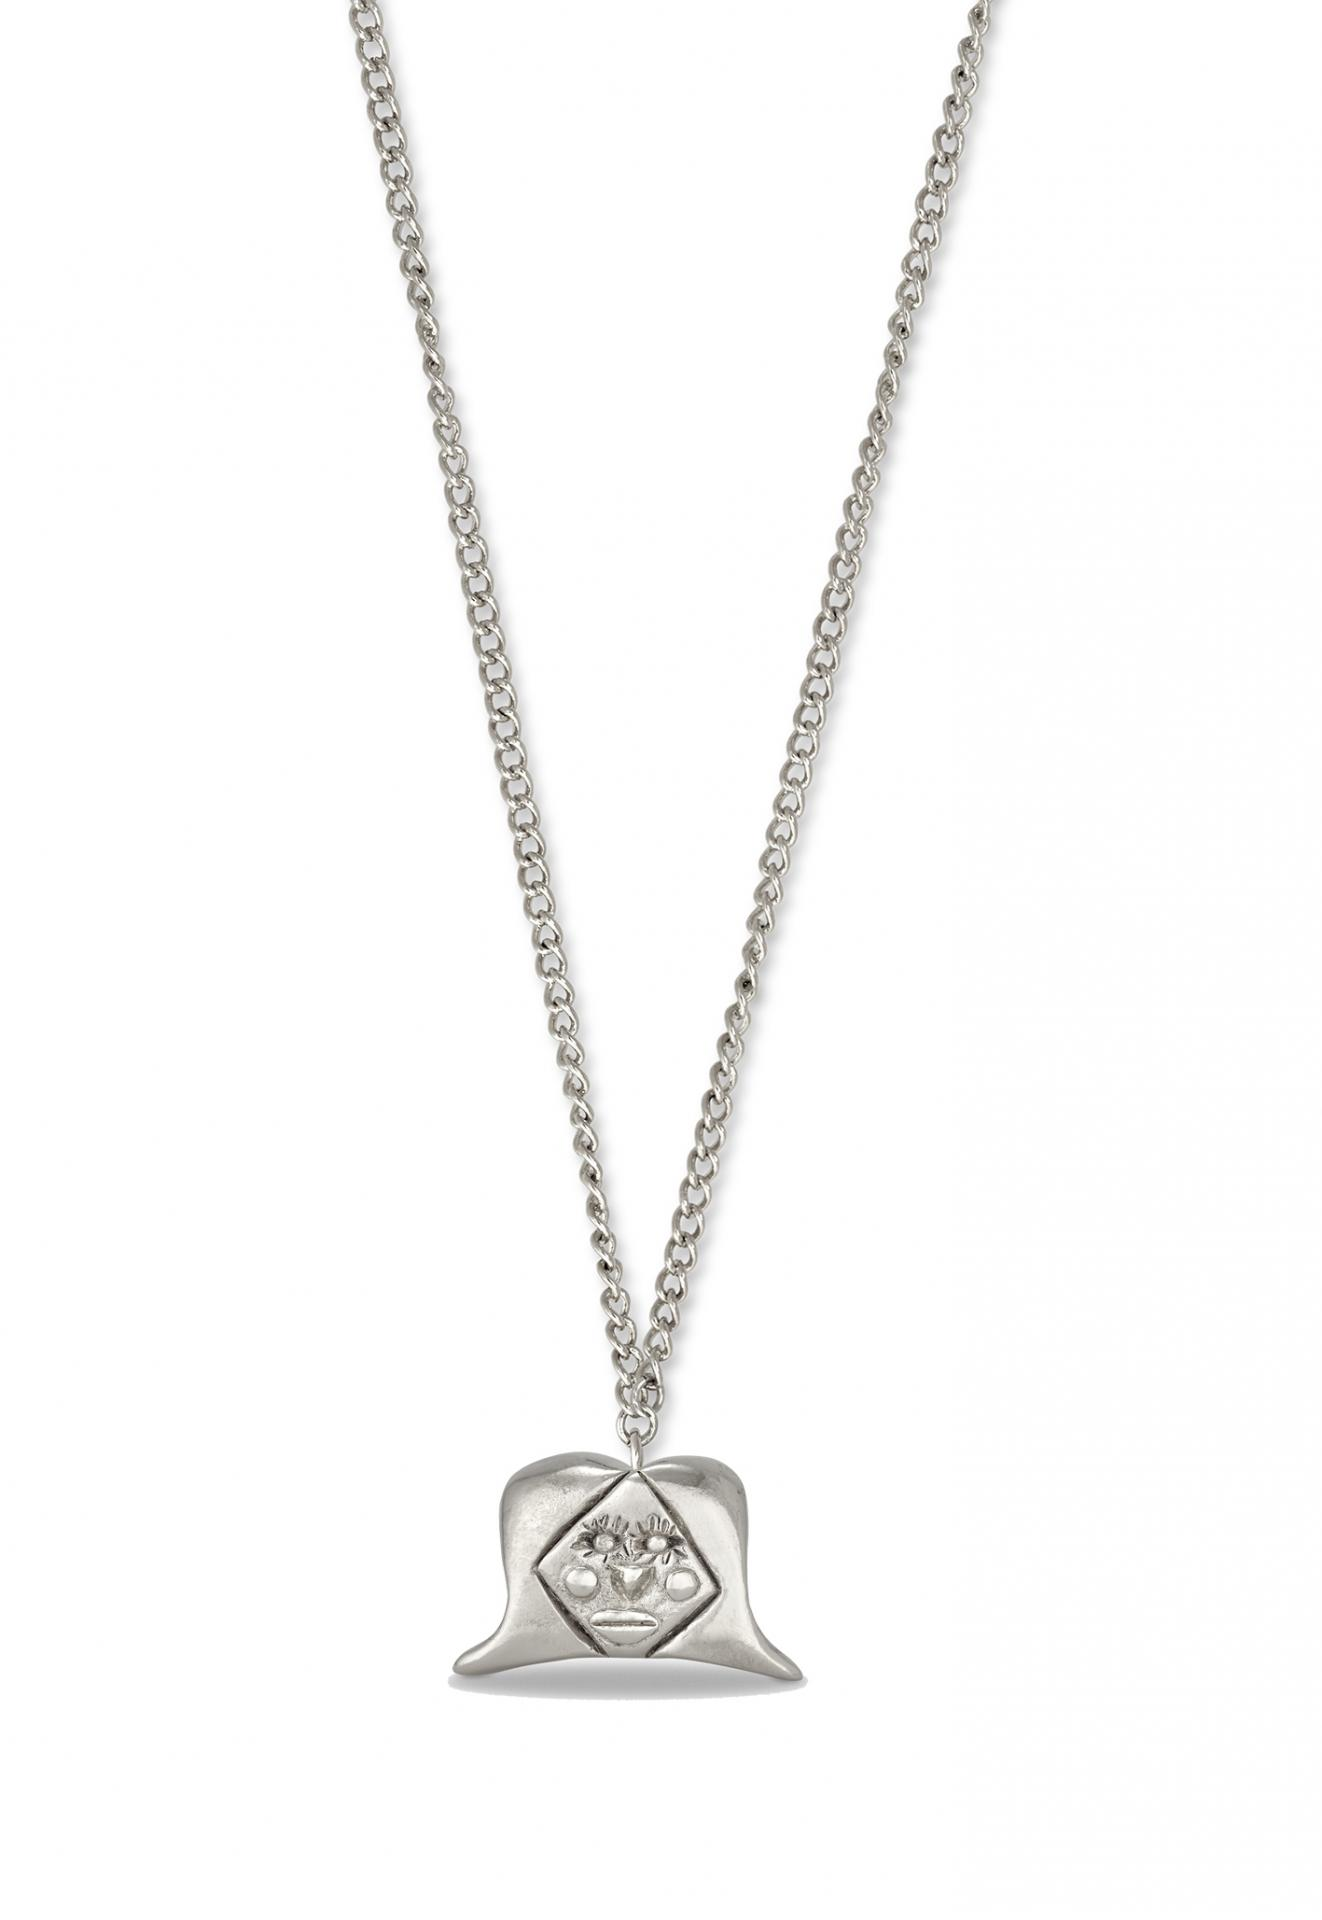 Audrey 2020 87b copie collier argent